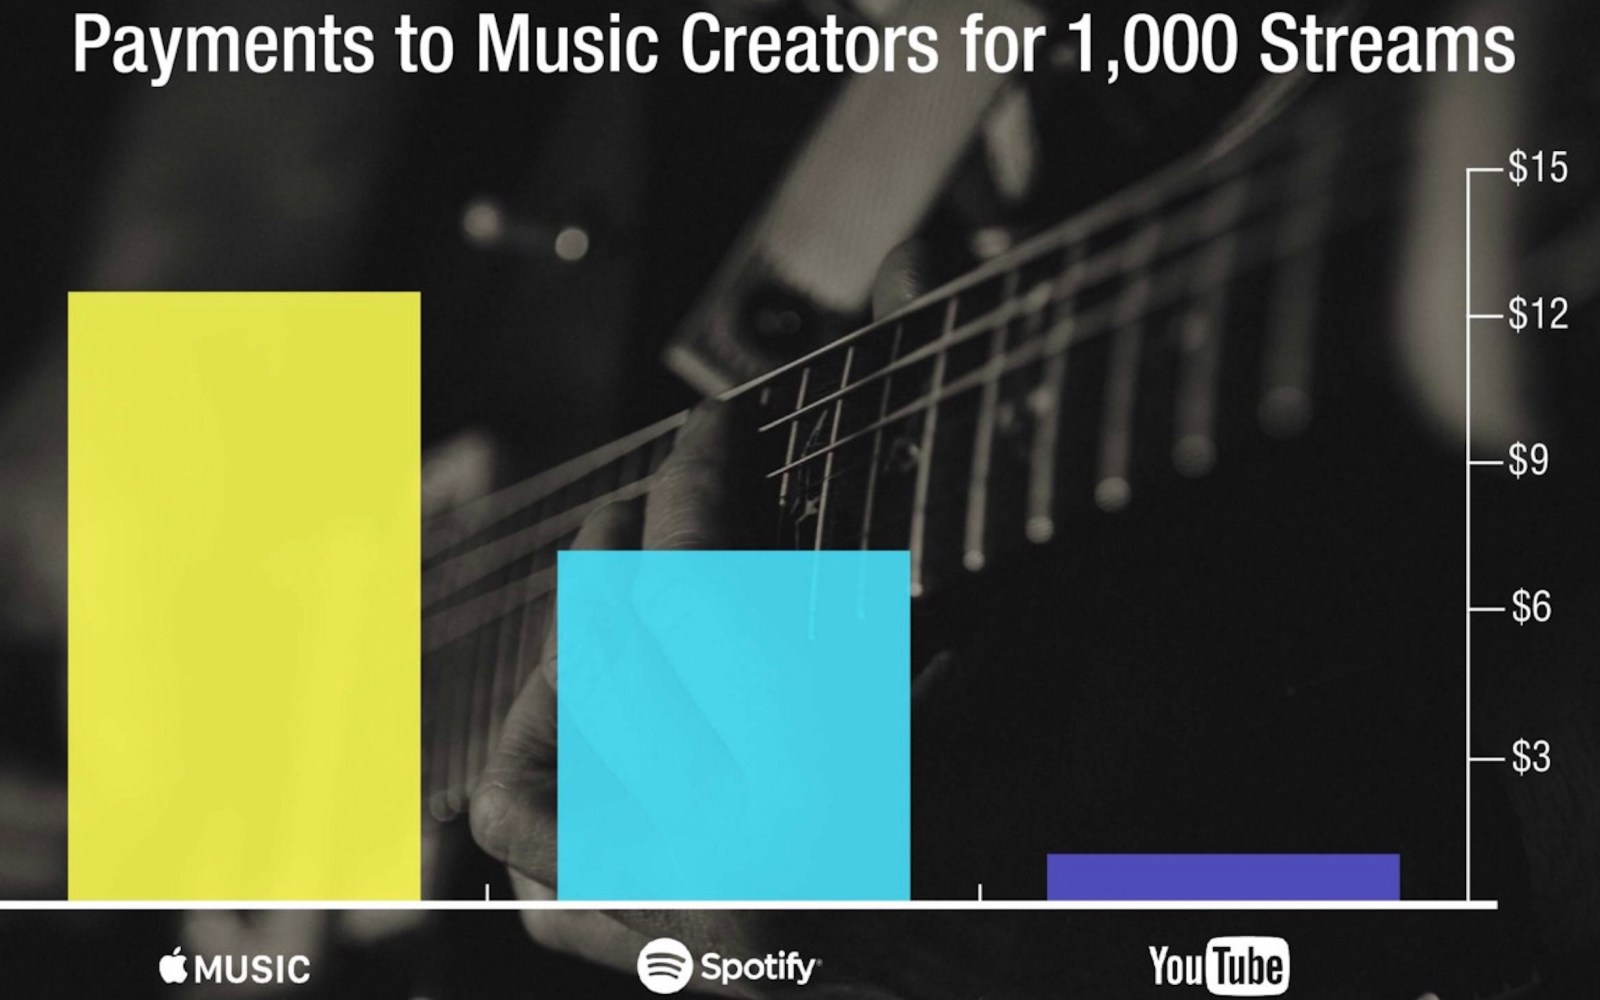 Riaa Highest Artist Rates Come From Apple Music As Music Industry Slowly Rebounds